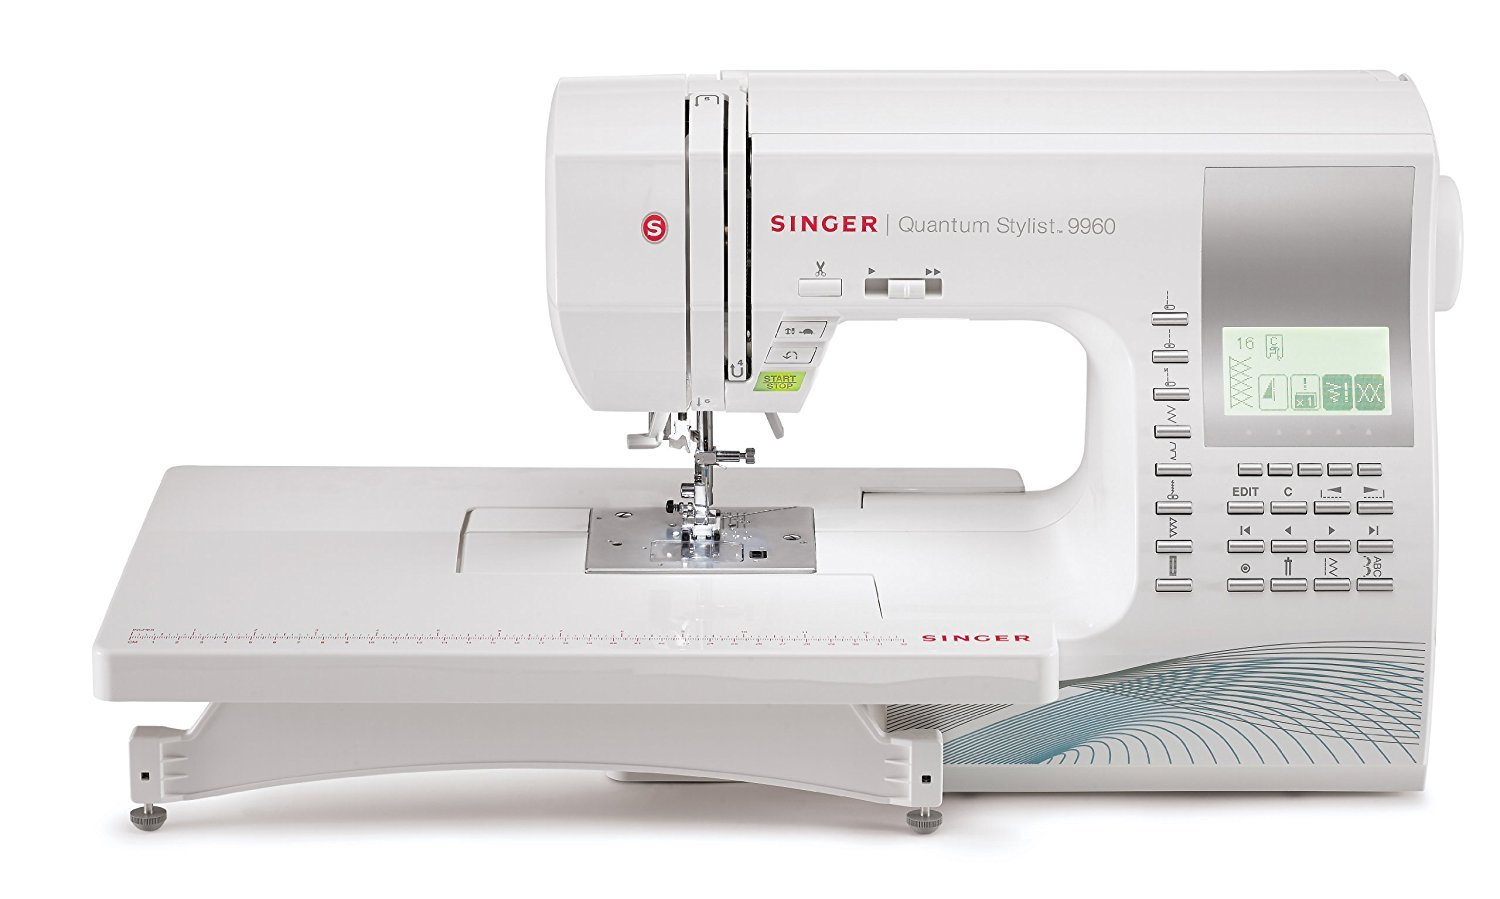 Singer Quantum Stylist 9960 Sewing Machine Black Friday Deal